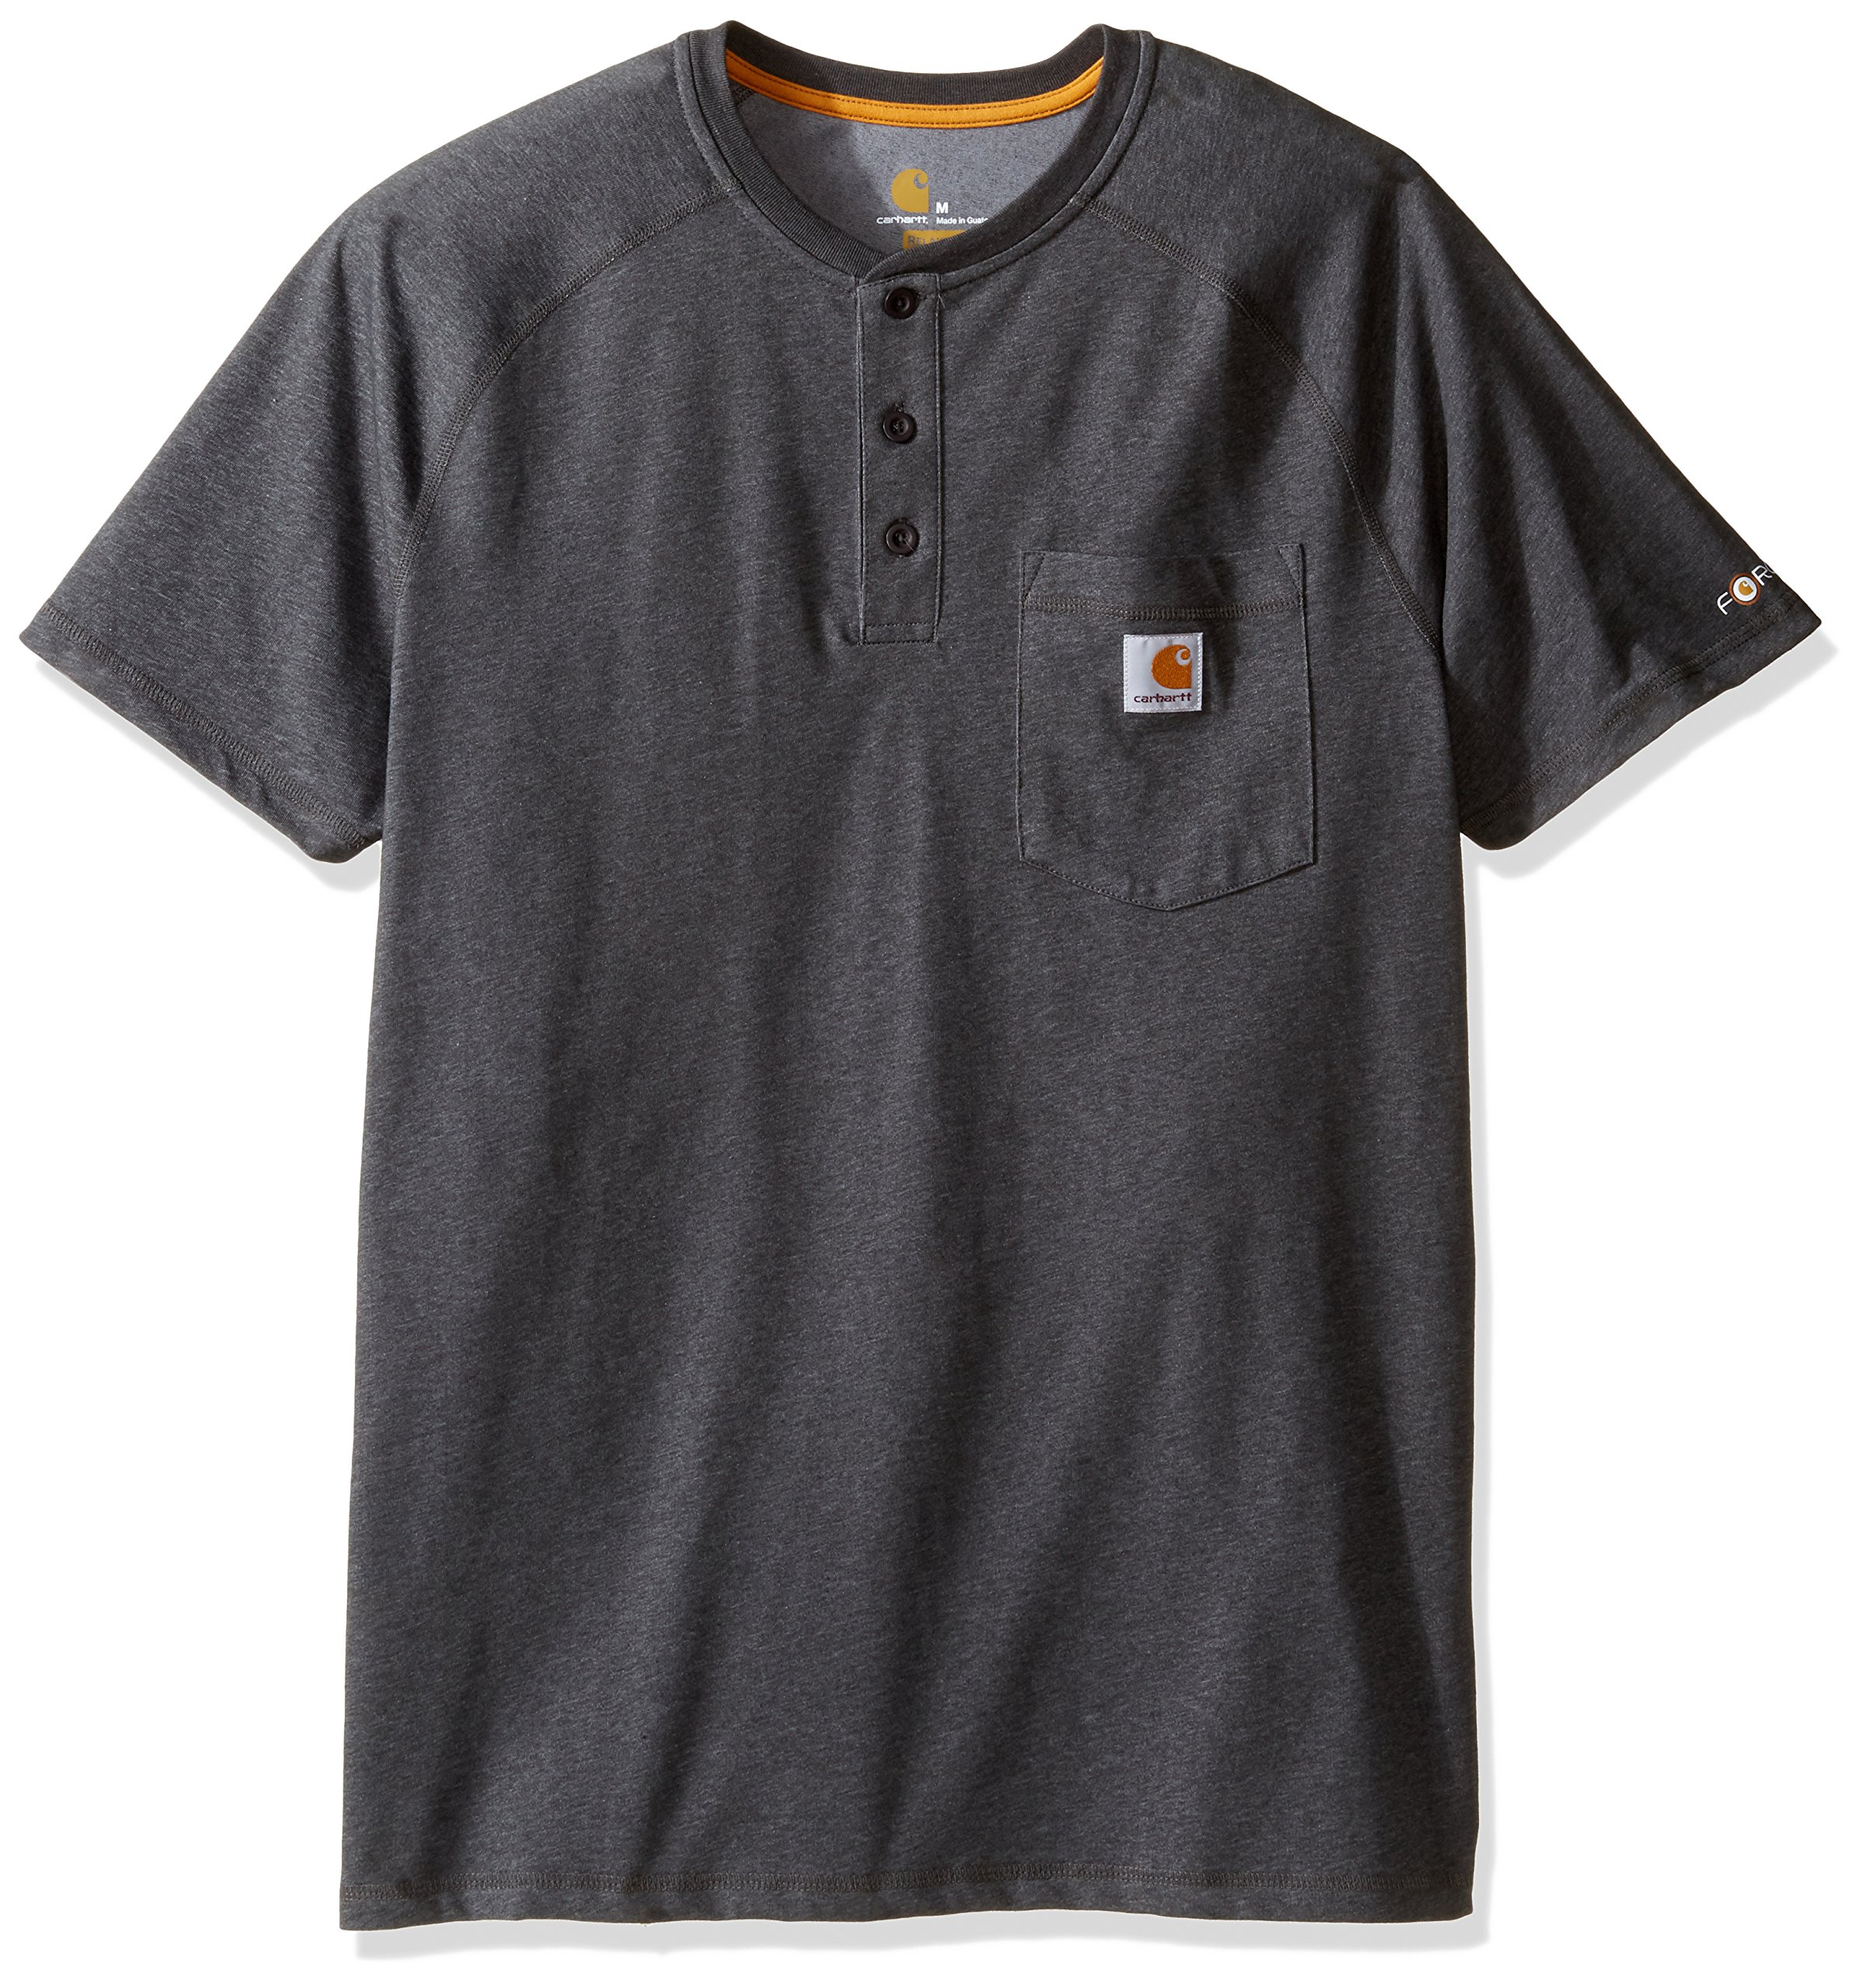 Carhartt Men's Force Cotton Delmont Short Sleeve Henley Relaxed Fit, Carbon Heather, X-Large